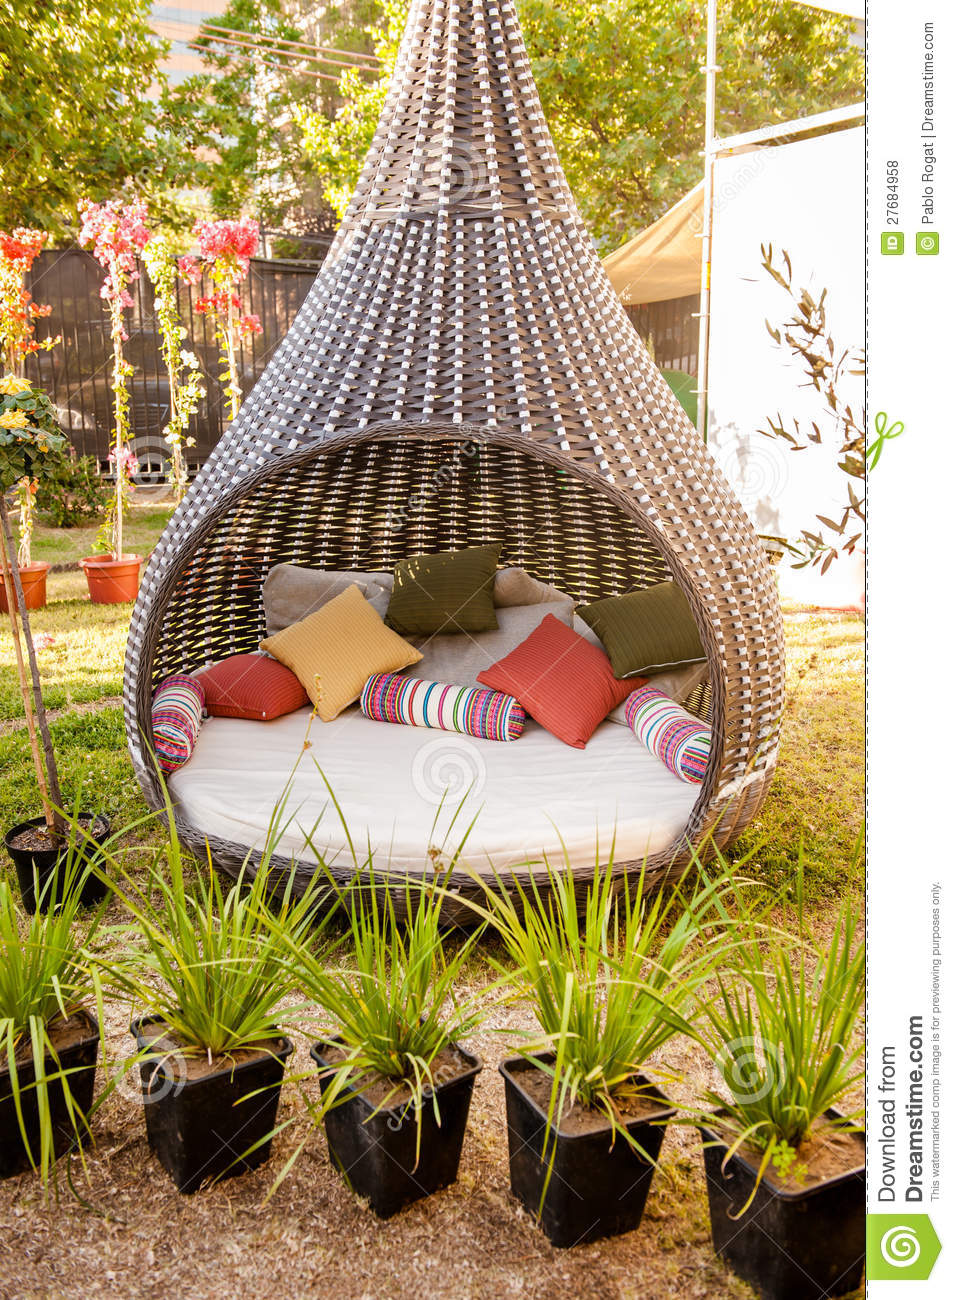 Cool Furniture For The Garden Royalty Free Stock Photos ...